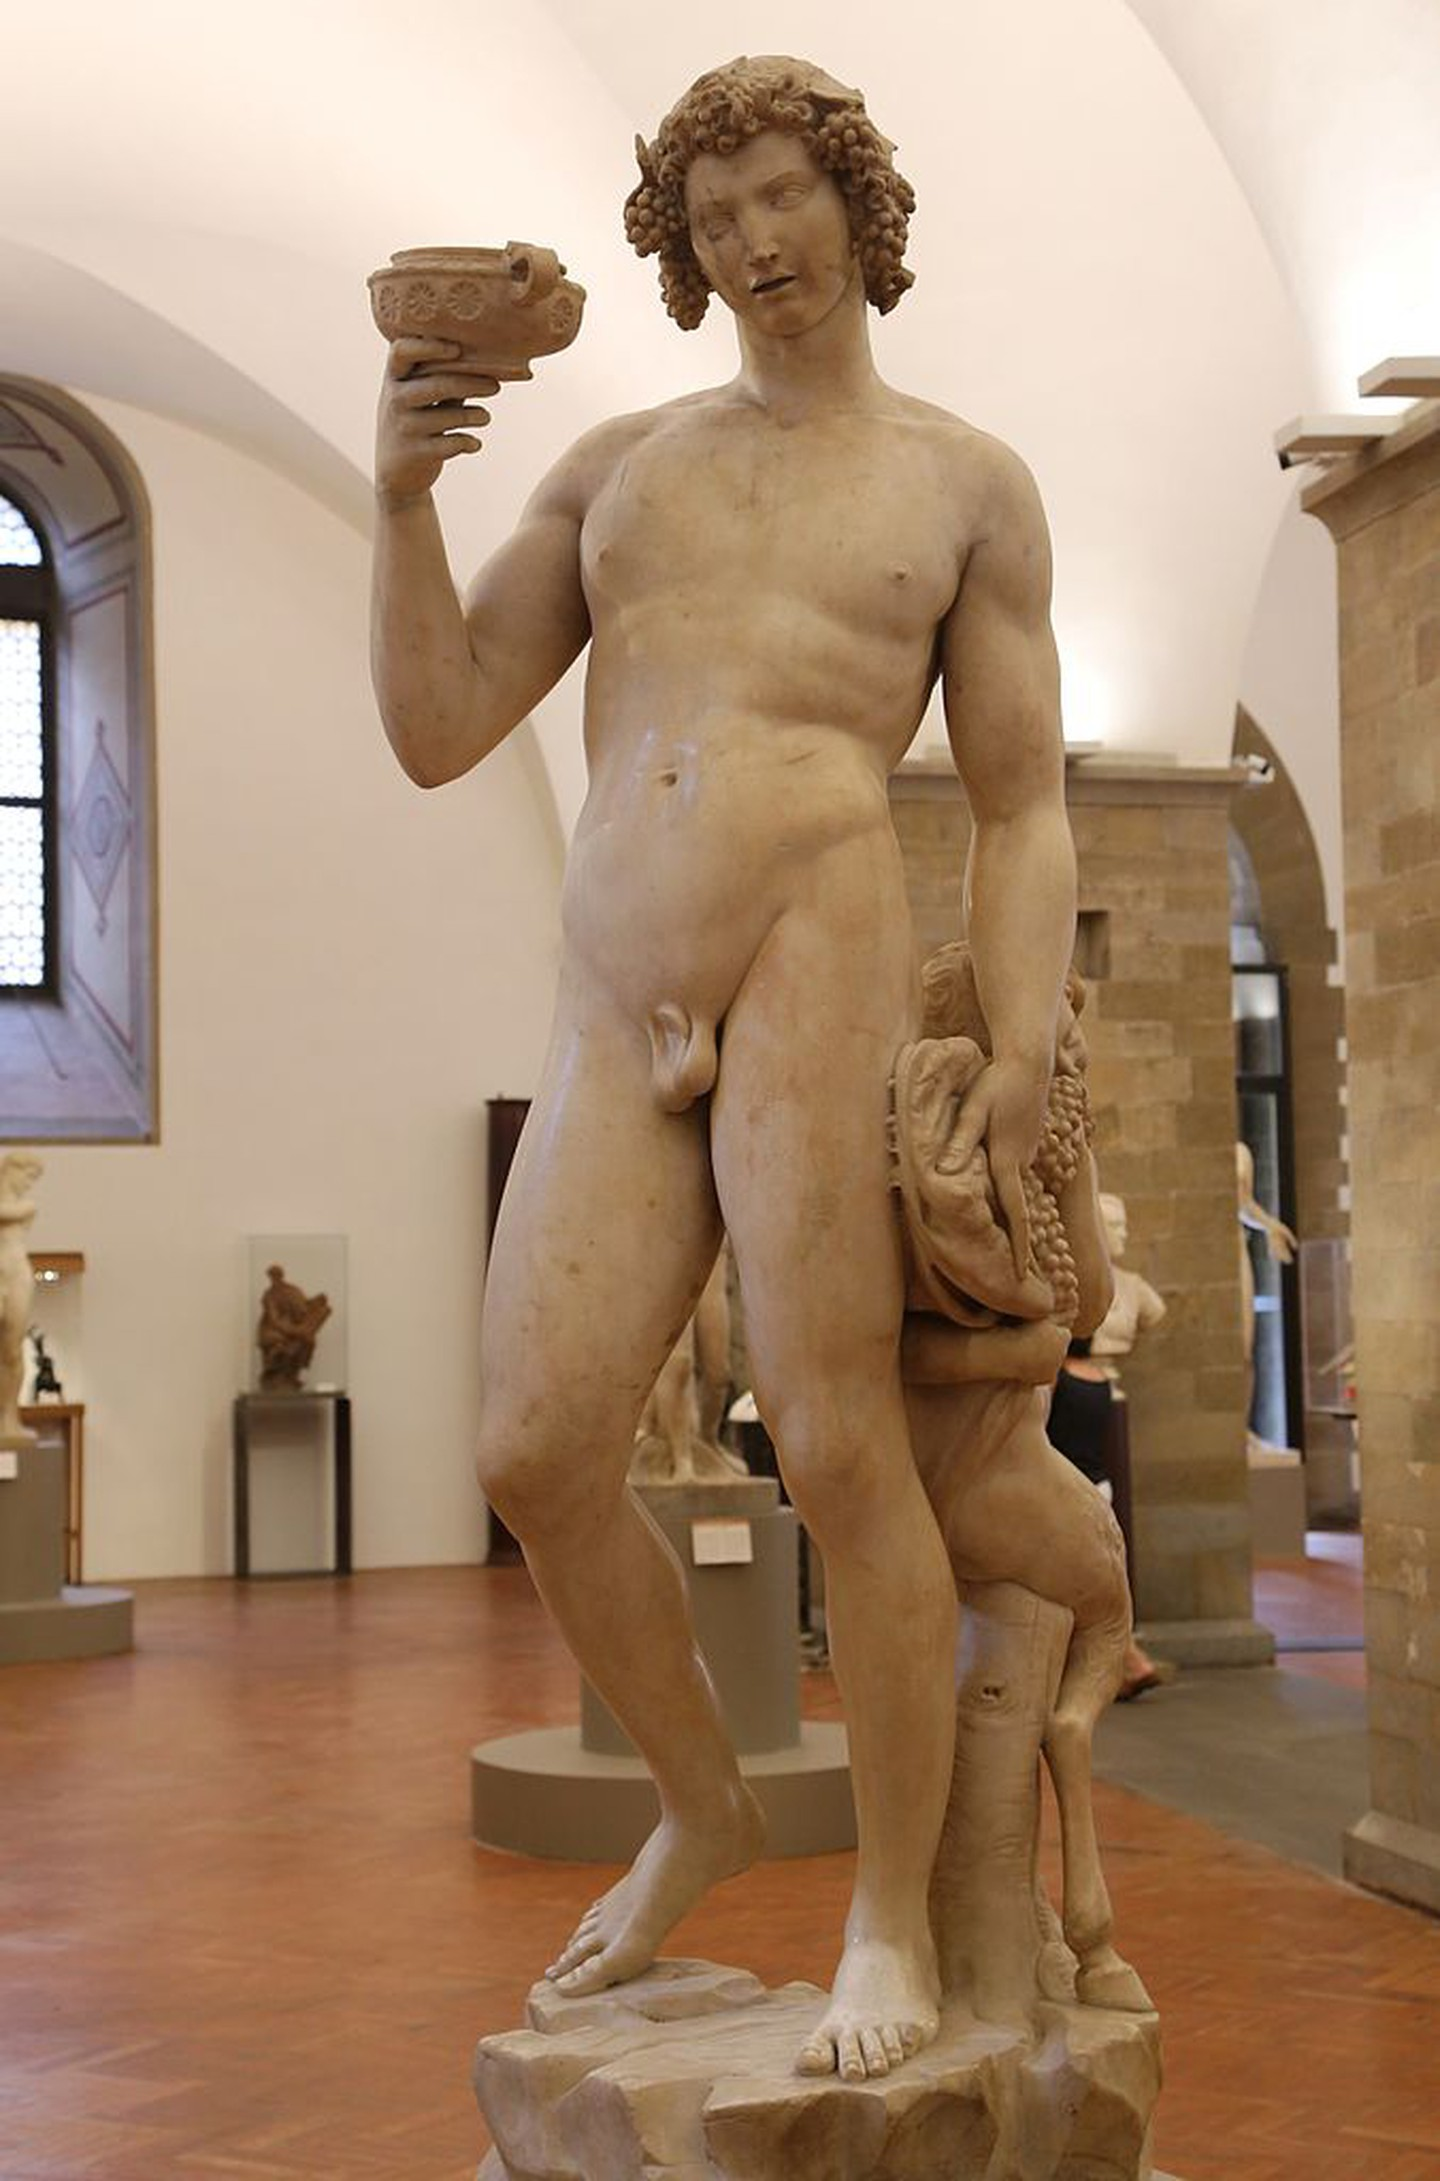 Michelangelo's first large